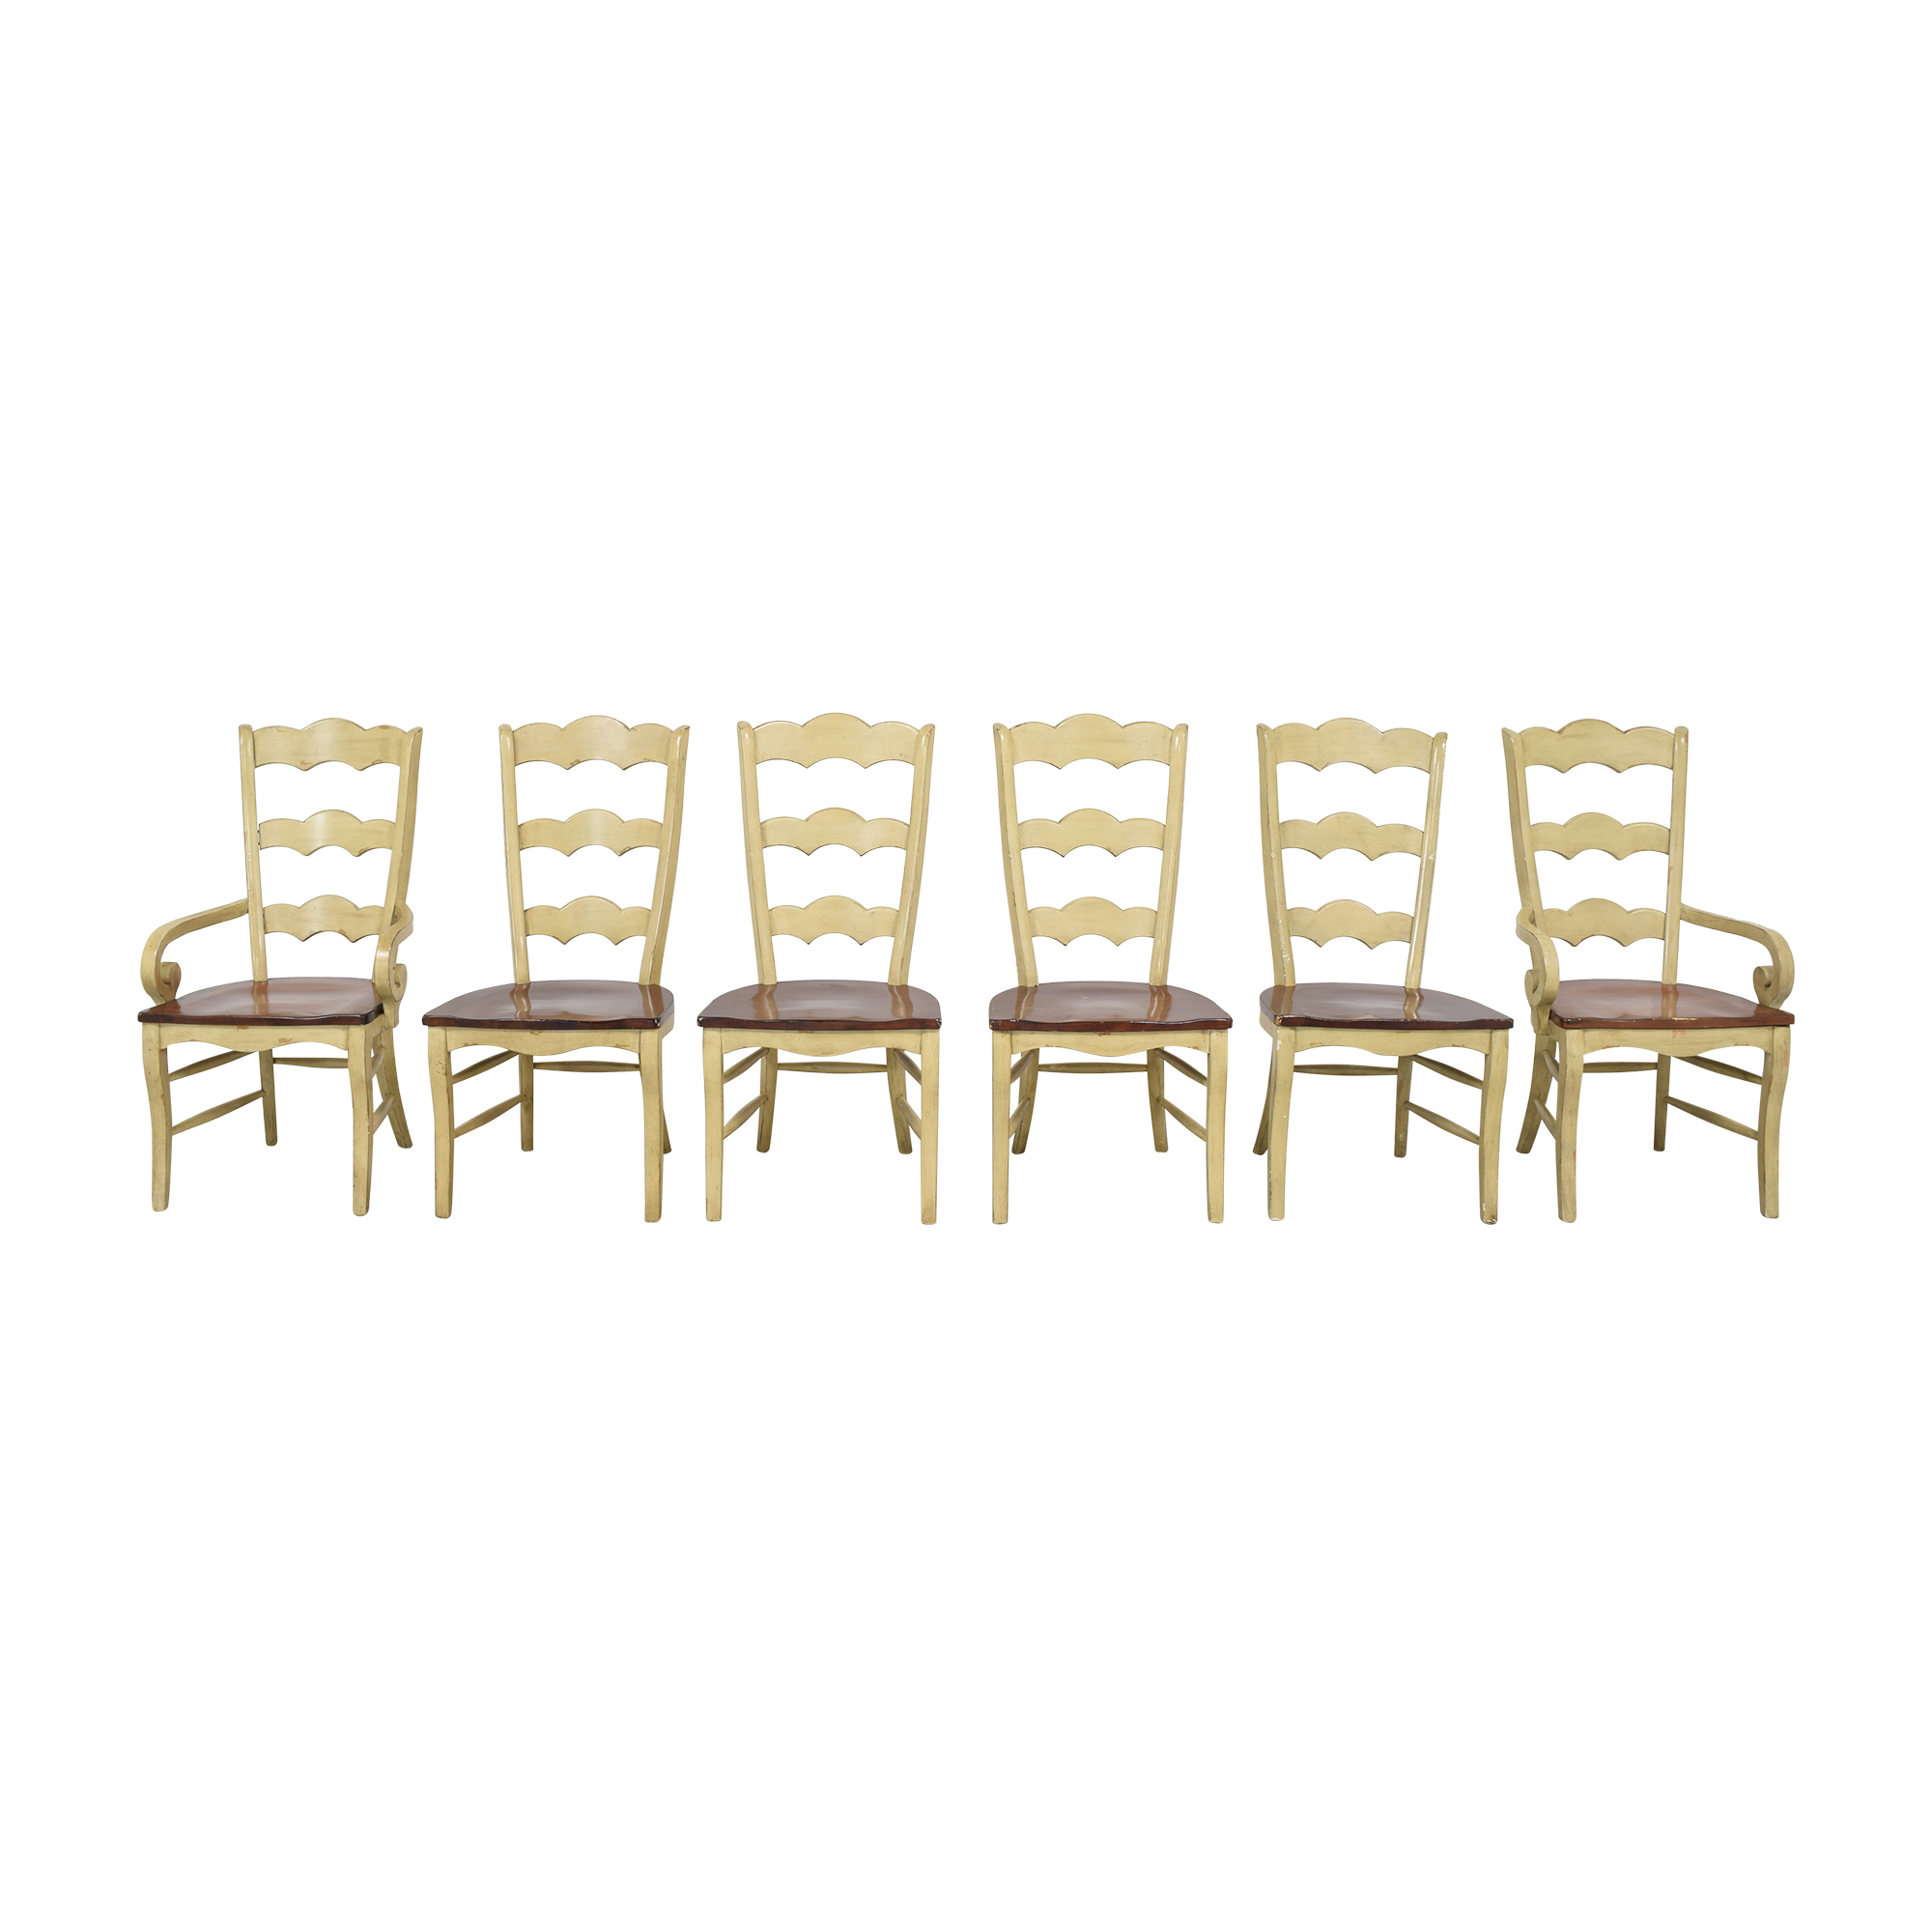 Hooker Furniture Hooker Dining Chairs second hand